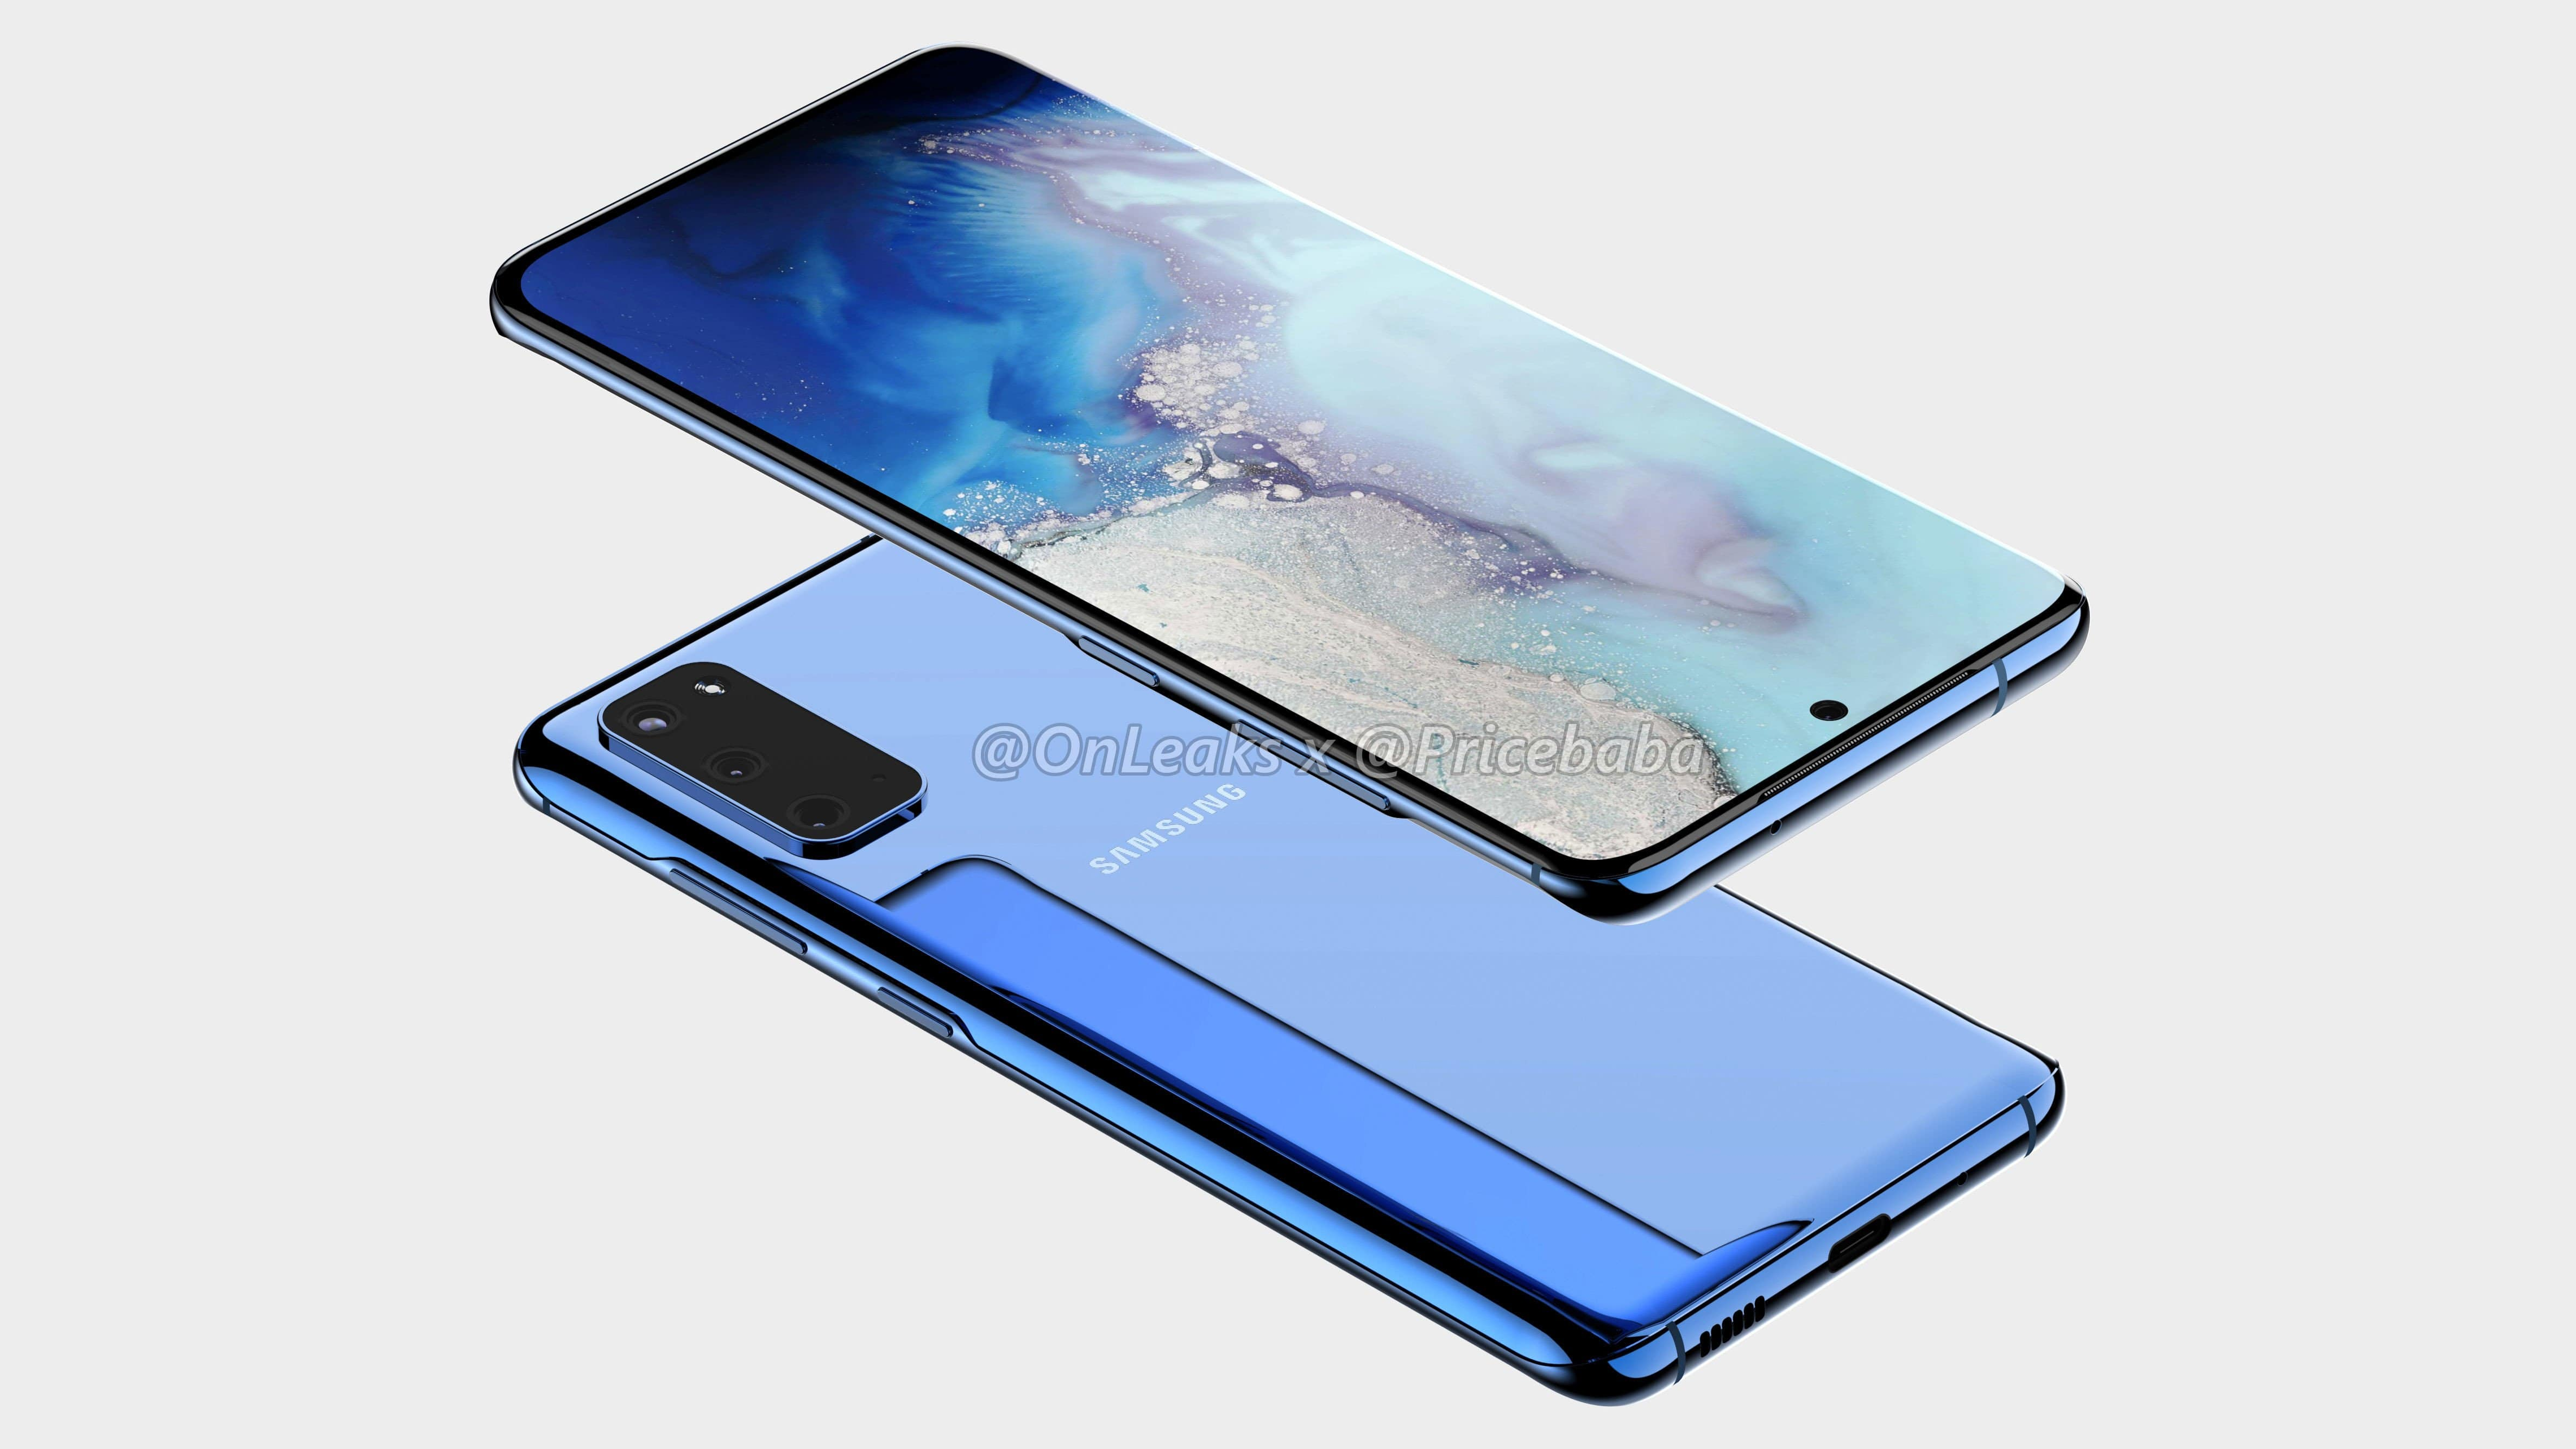 Samsung Galaxy S11e – The Most Economical Flagship Model Among the Upcoming Samsung Phones